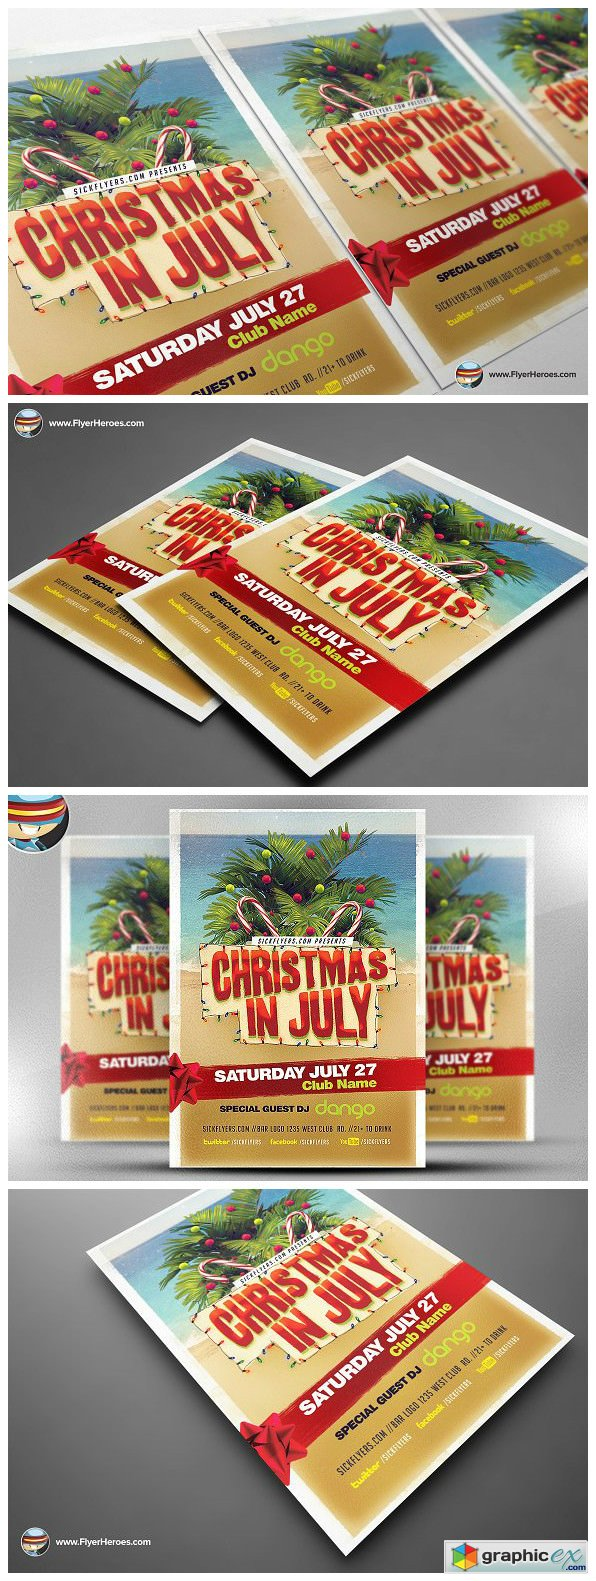 Christmas in July Flyer Template v2